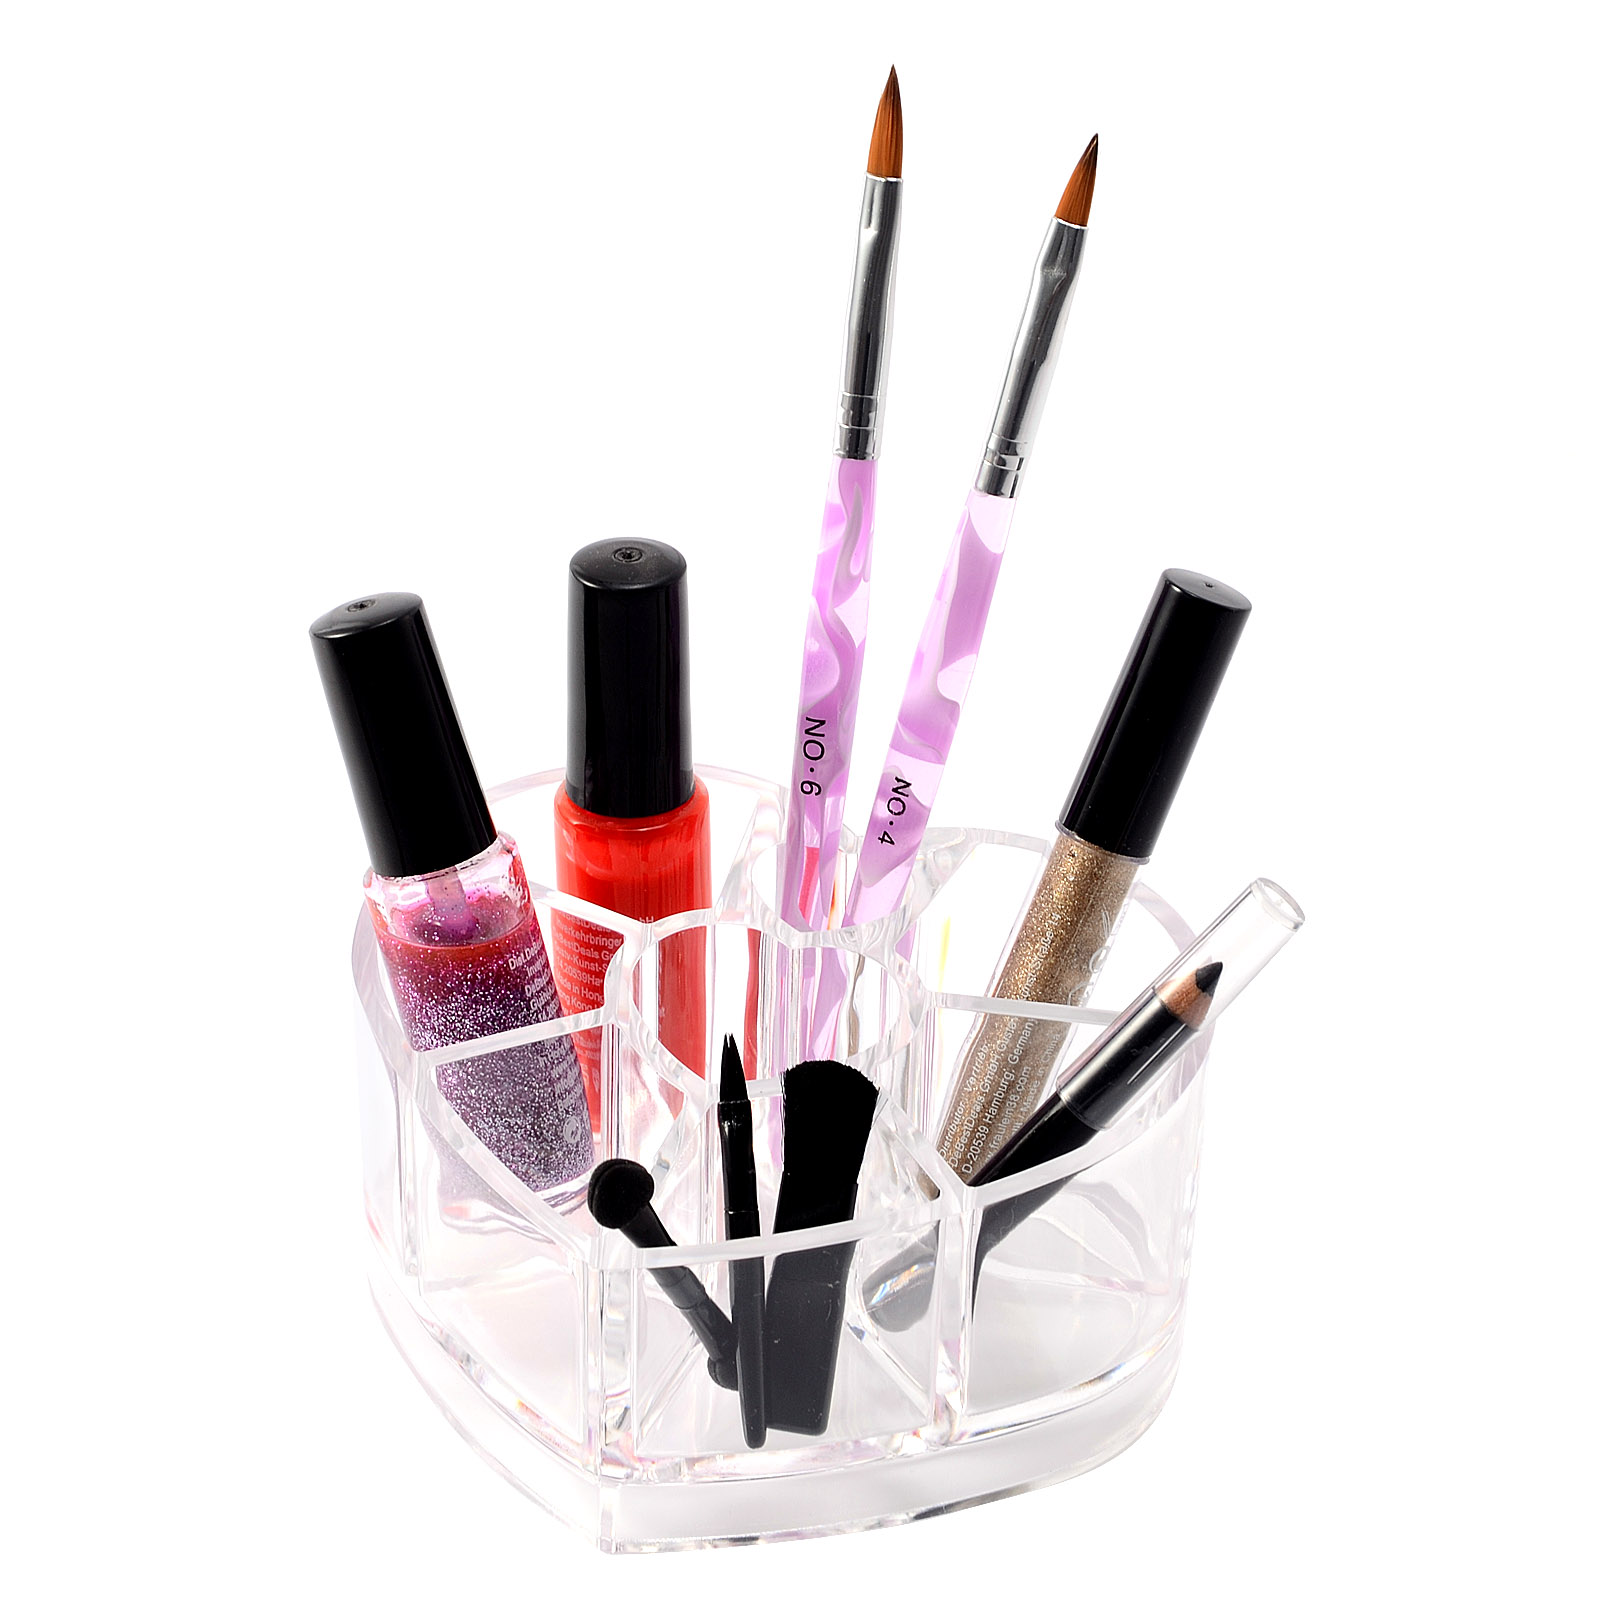 acrylic makeup case brush lip cosmetic holder organizer drawer stand storage ebay. Black Bedroom Furniture Sets. Home Design Ideas